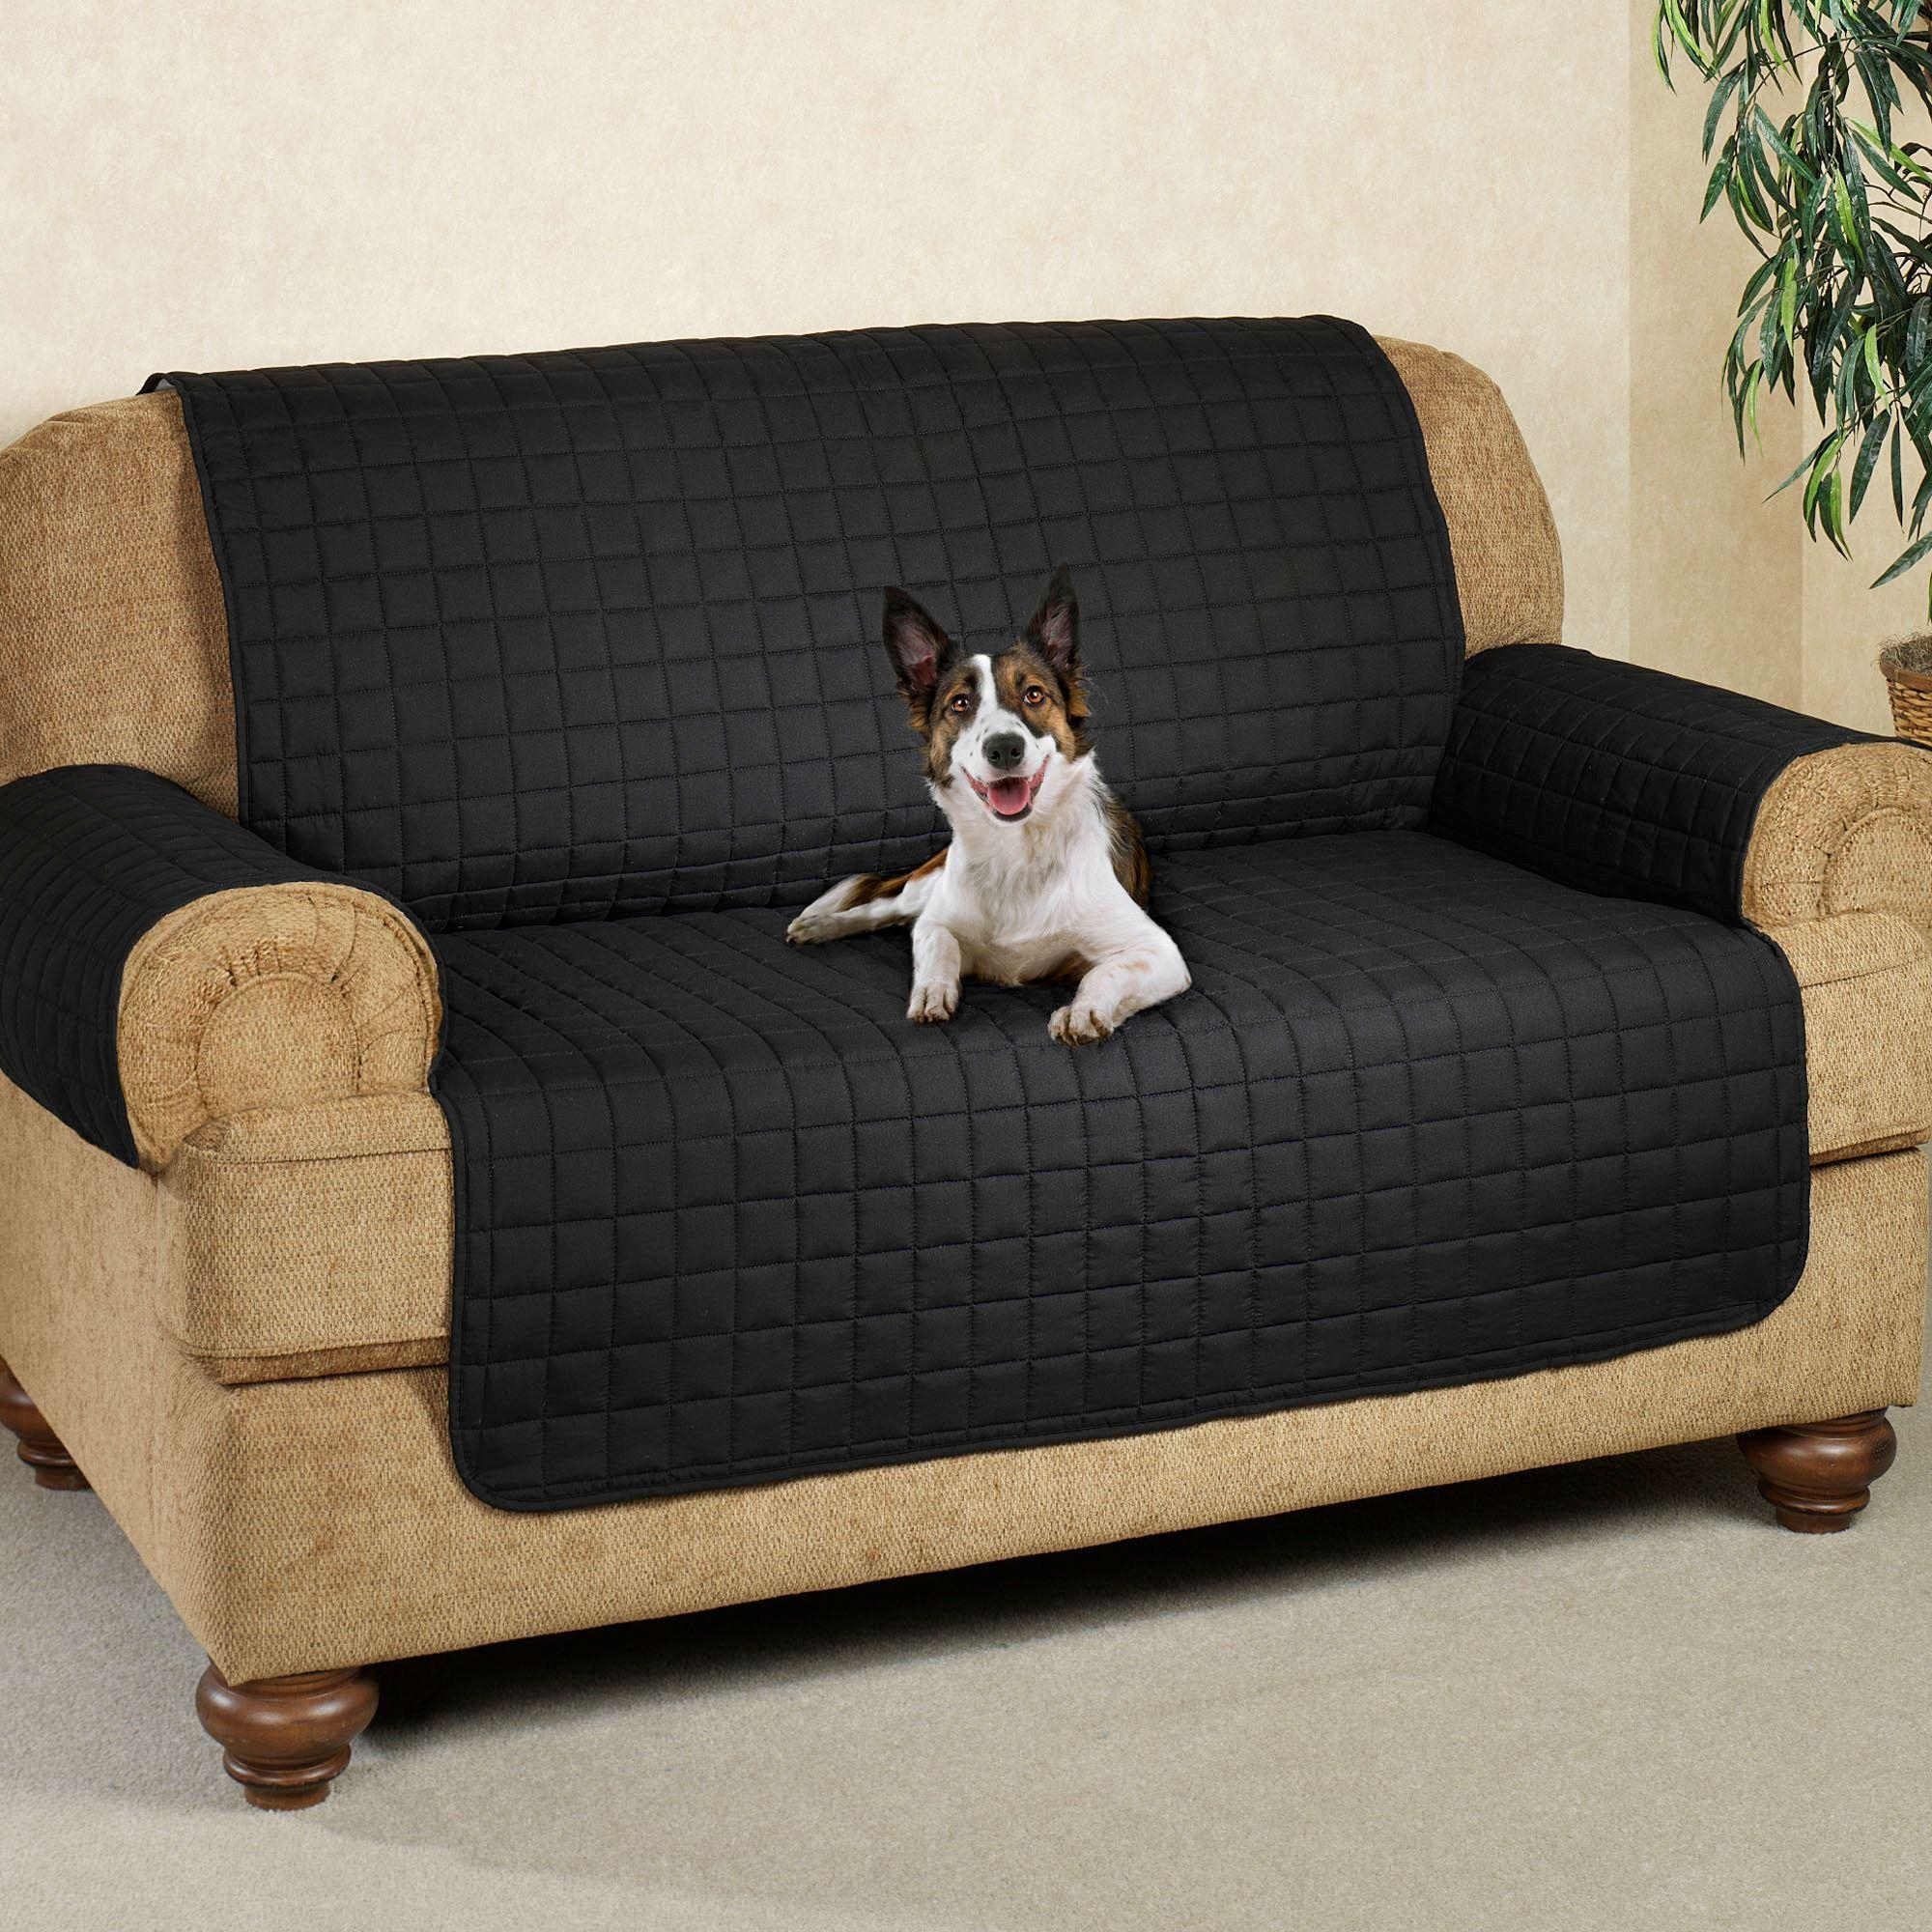 Microfiber Pet Furniture Covers With Tuck In Flaps Intended For Pet Proof Sofa Covers (View 8 of 20)